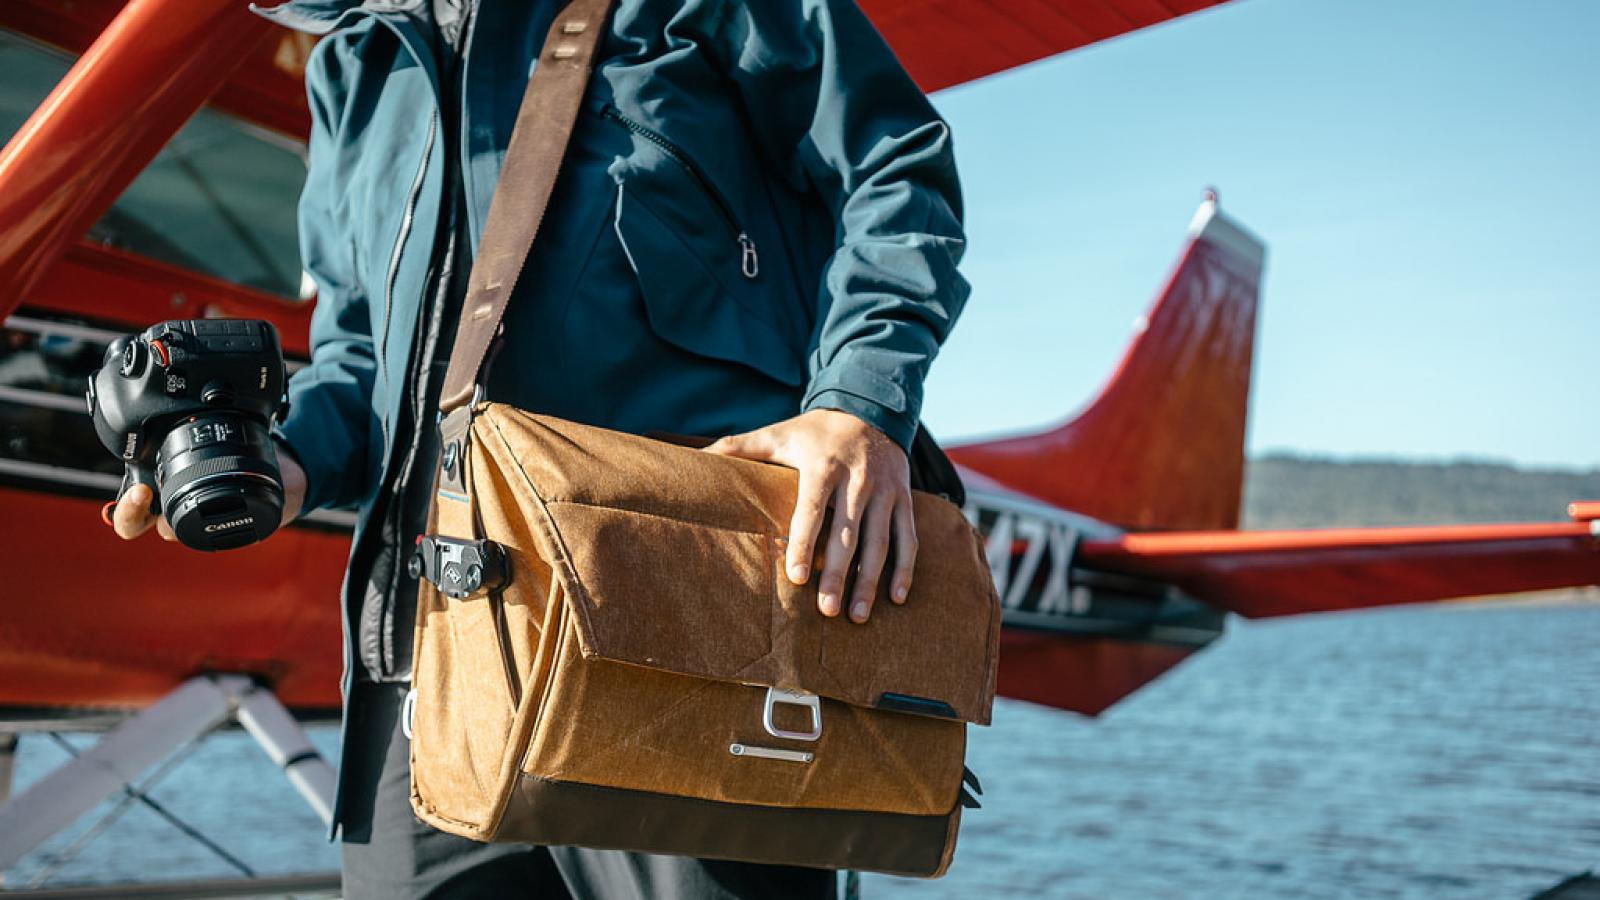 Giveaway: The Everyday Messenger Bag by Peak Design